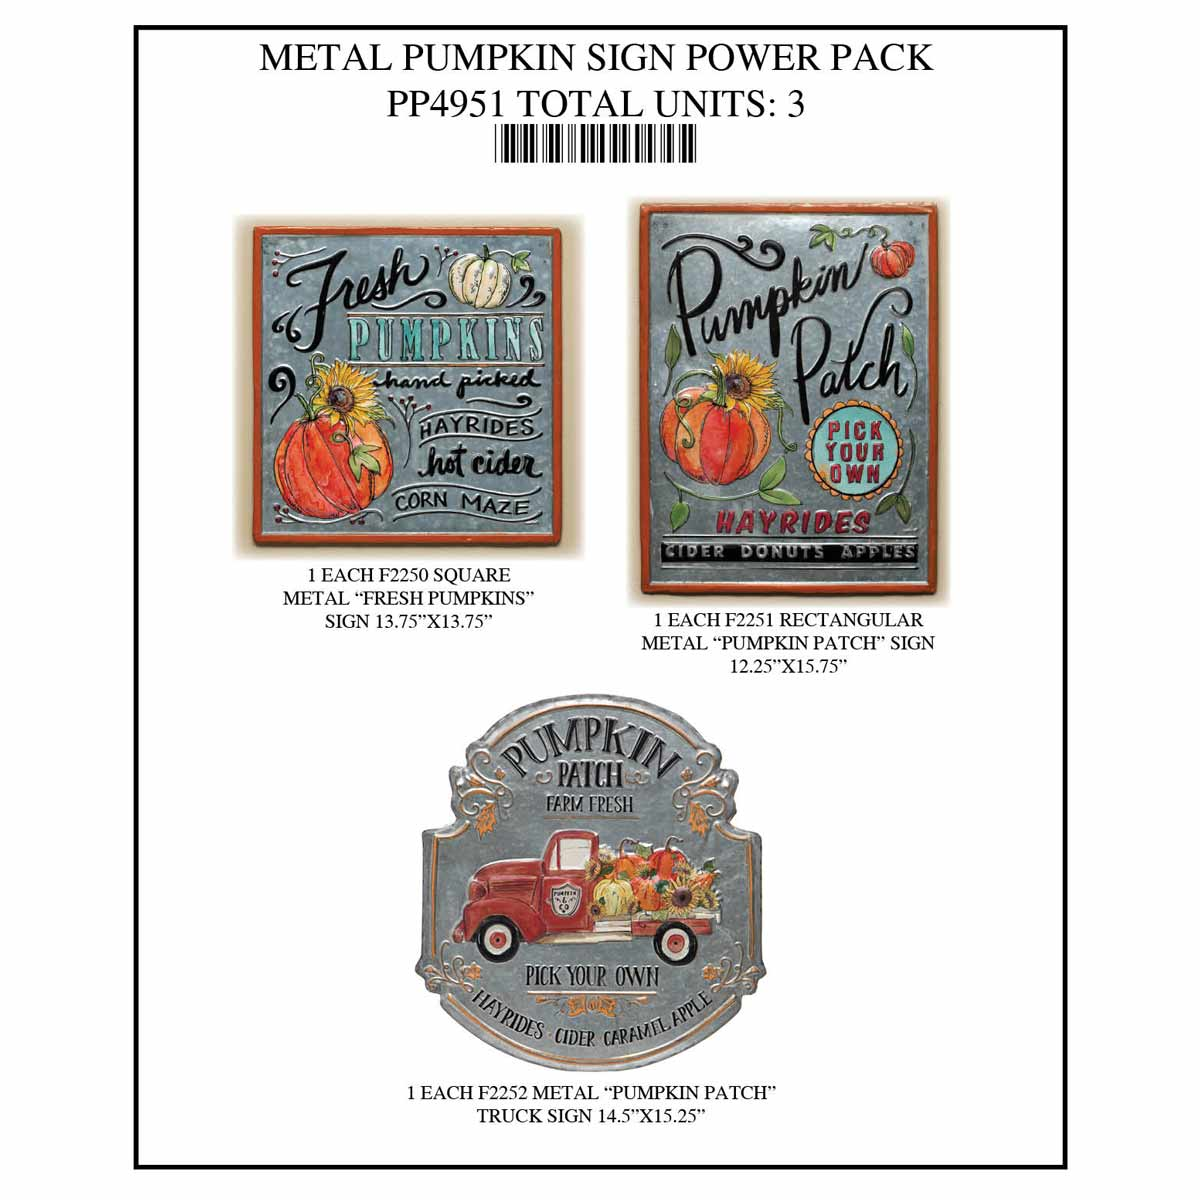 PUMPKIN SIGN POWER PACK 3 UNITS PP4951